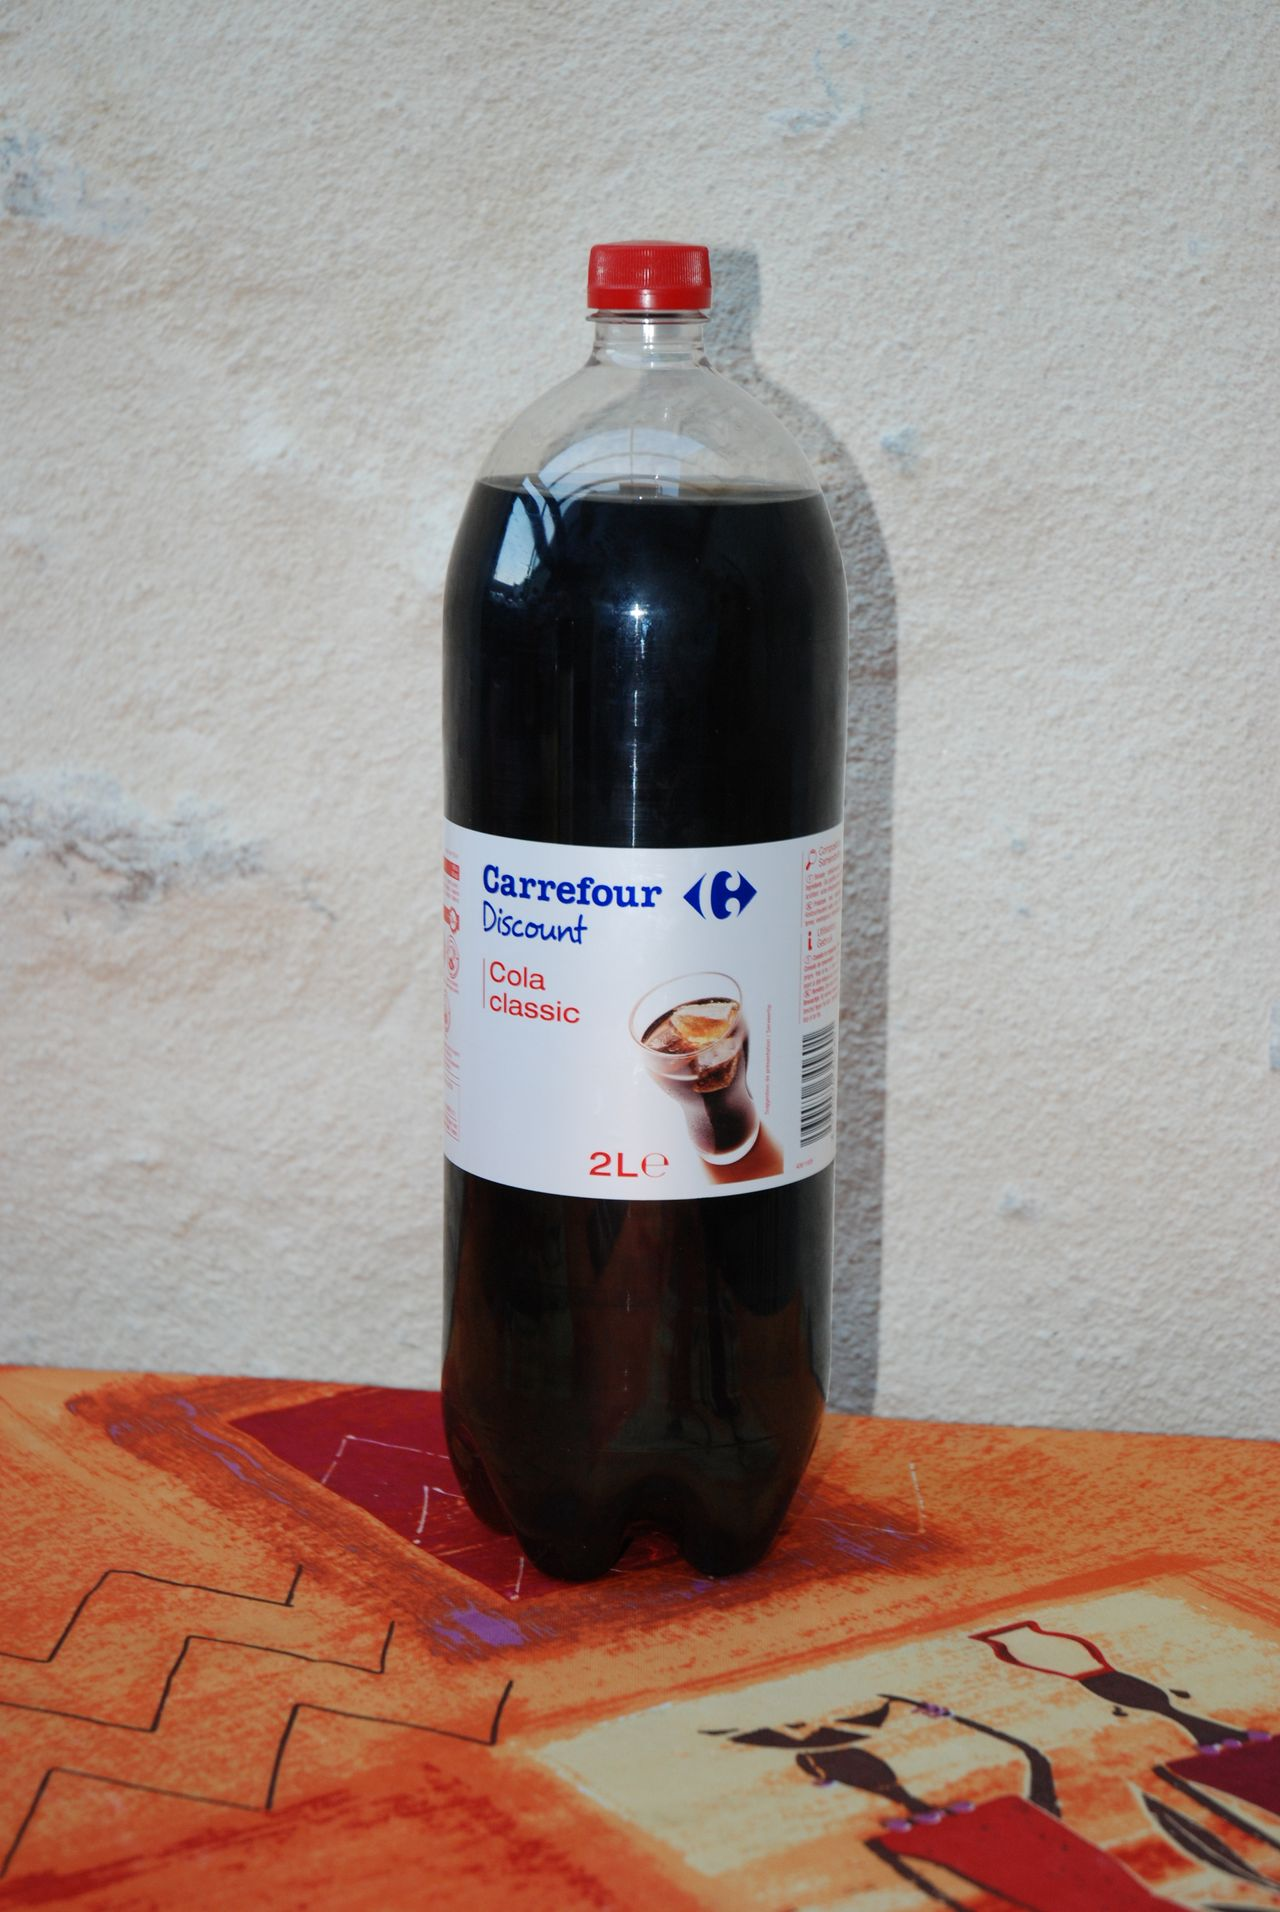 http://www.gamalive.com/images/fiches/3962-carrefour-discount-cola.jpg